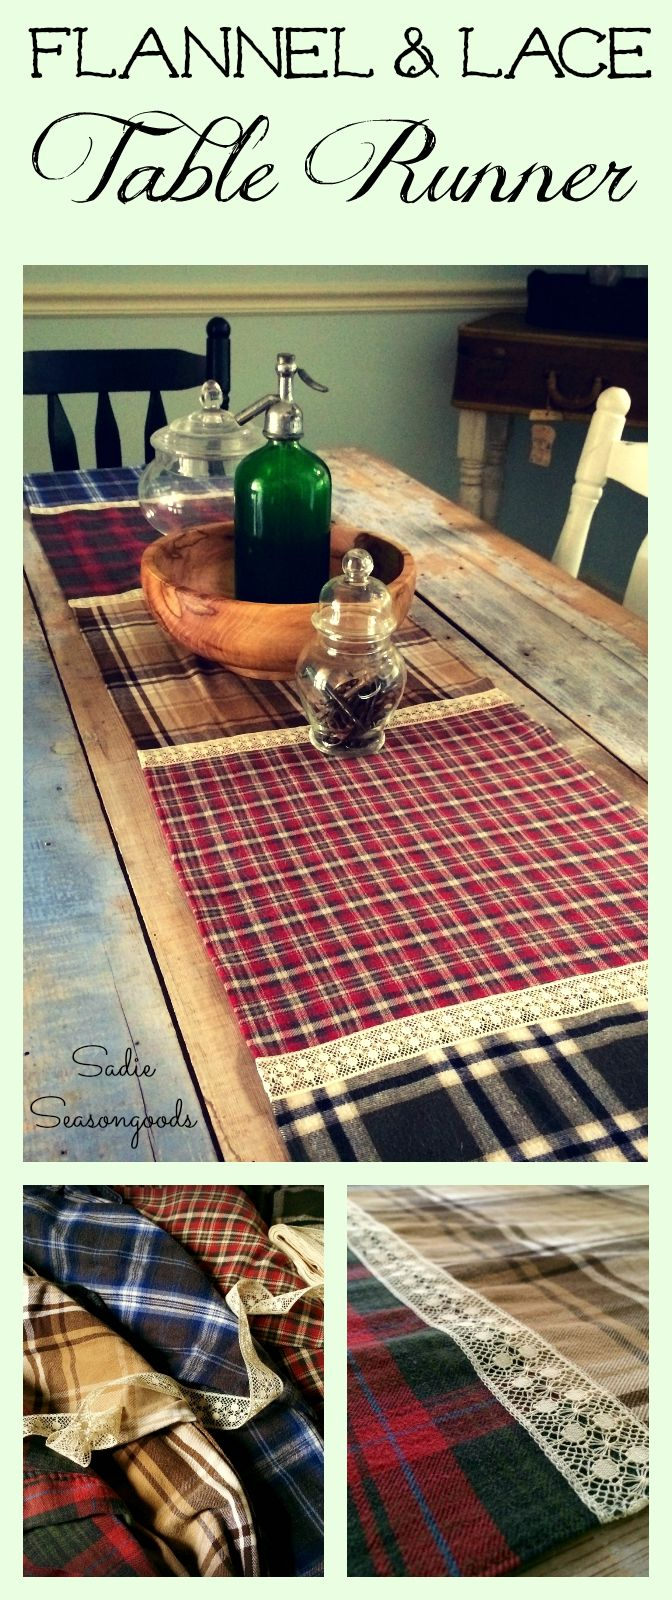 Create a cozy, warm autumn table runner (perfect for Fall into Winter) from